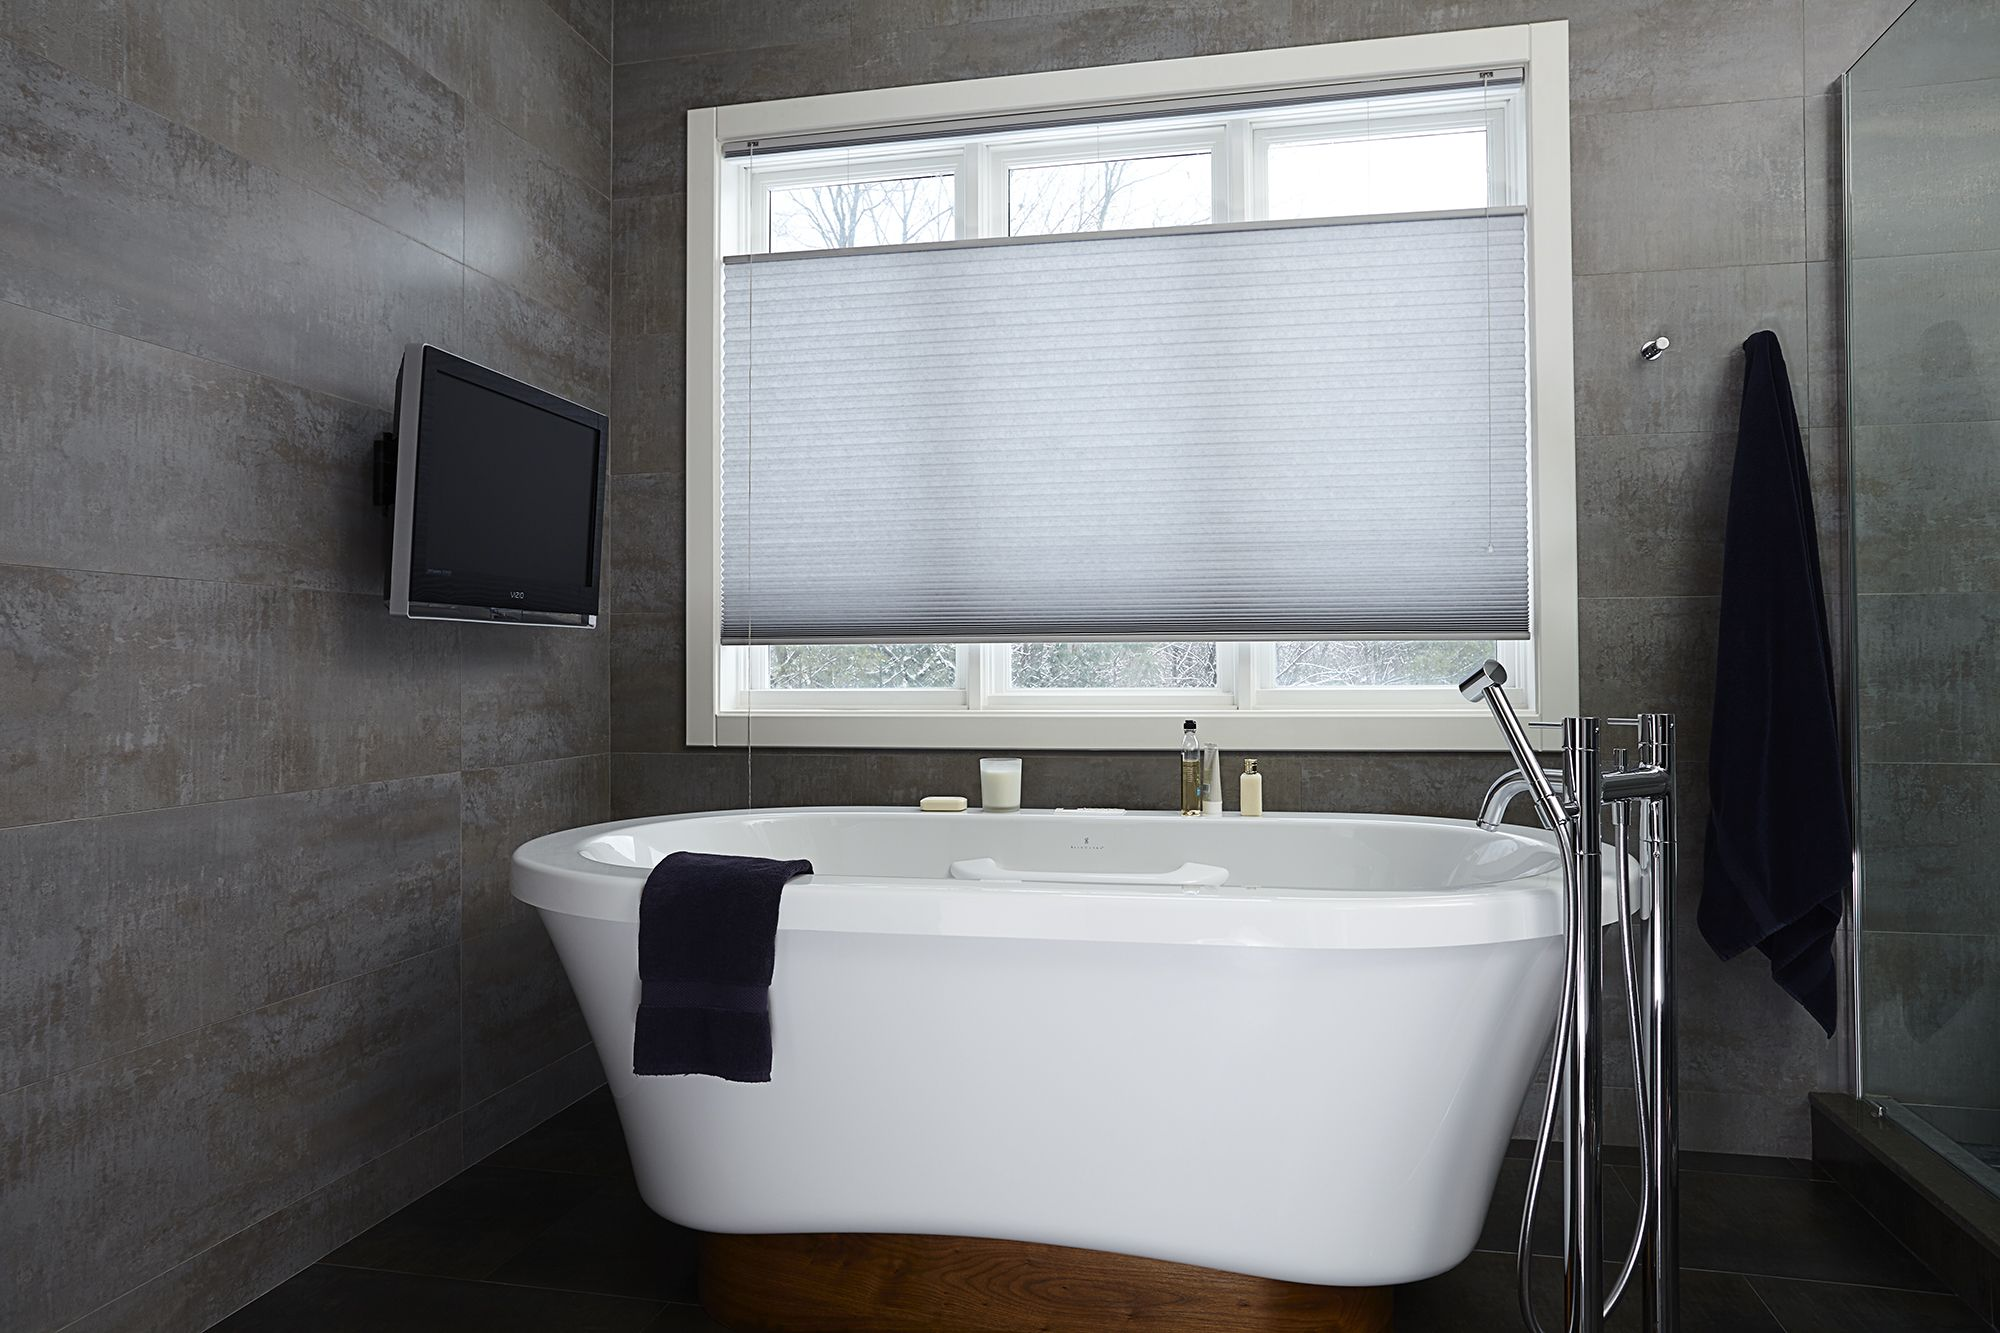 Available in both light filtering and blackout, Cellular Shades are the perfect solution for any decor.   #cellularshades #WindowTreatment #Blindstogo #Cellular #Decor #Bathroom